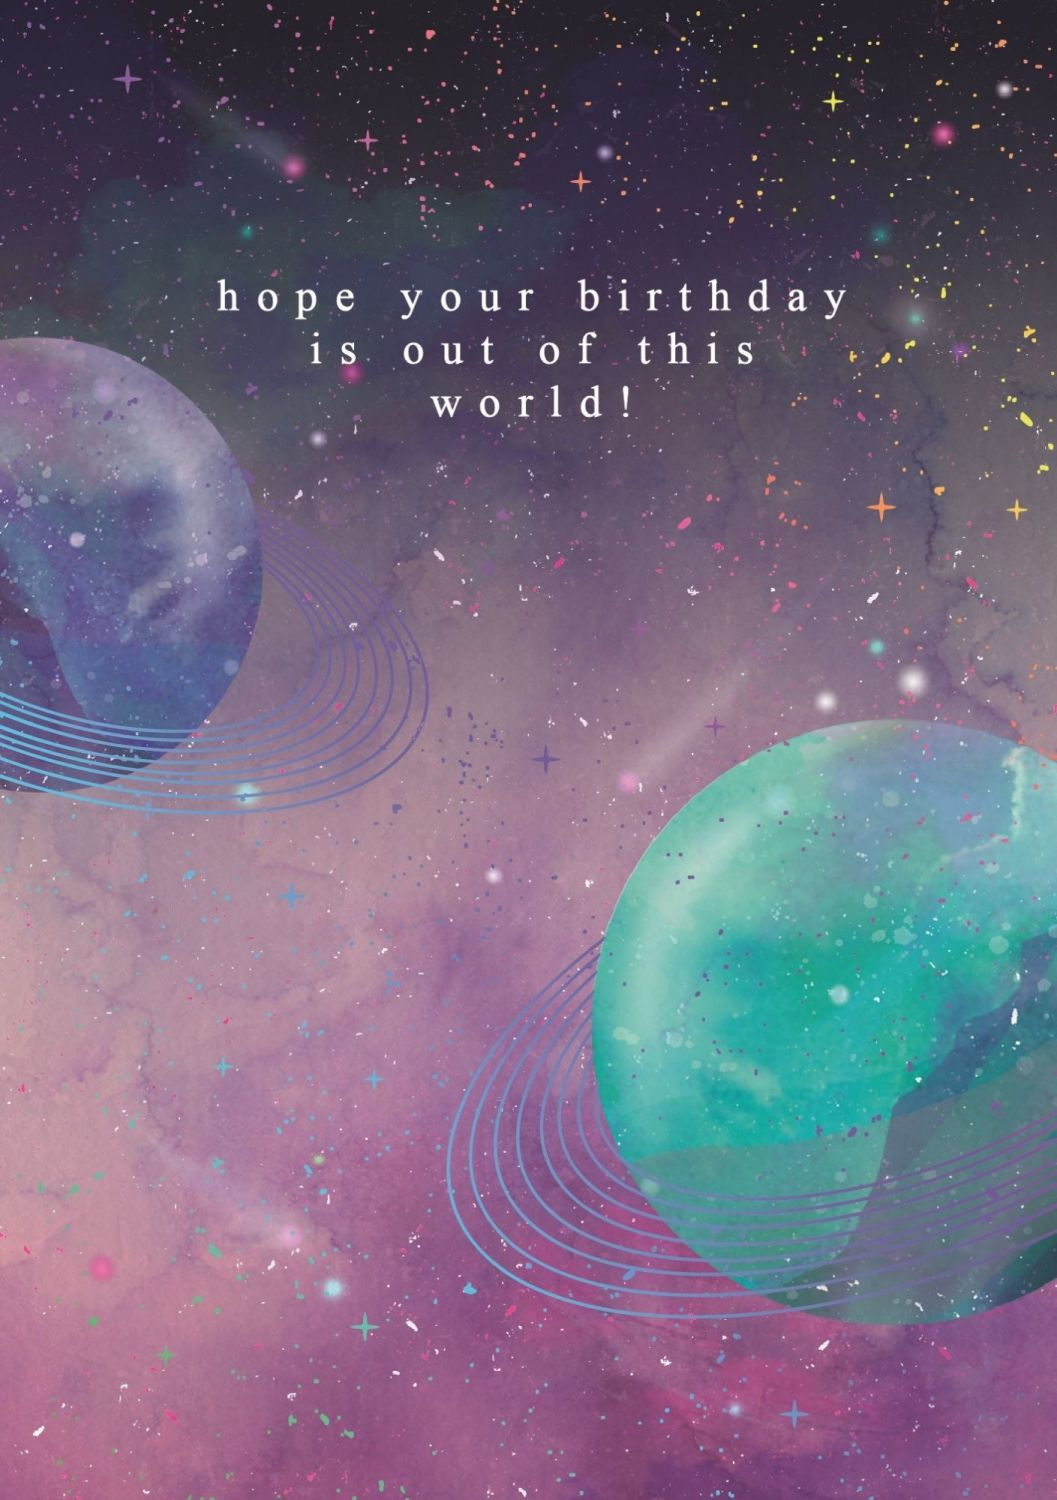 Solar System Birthday Cards - HOPE Your BIRTHDAY Is Out Of THIS WORLD - OUT